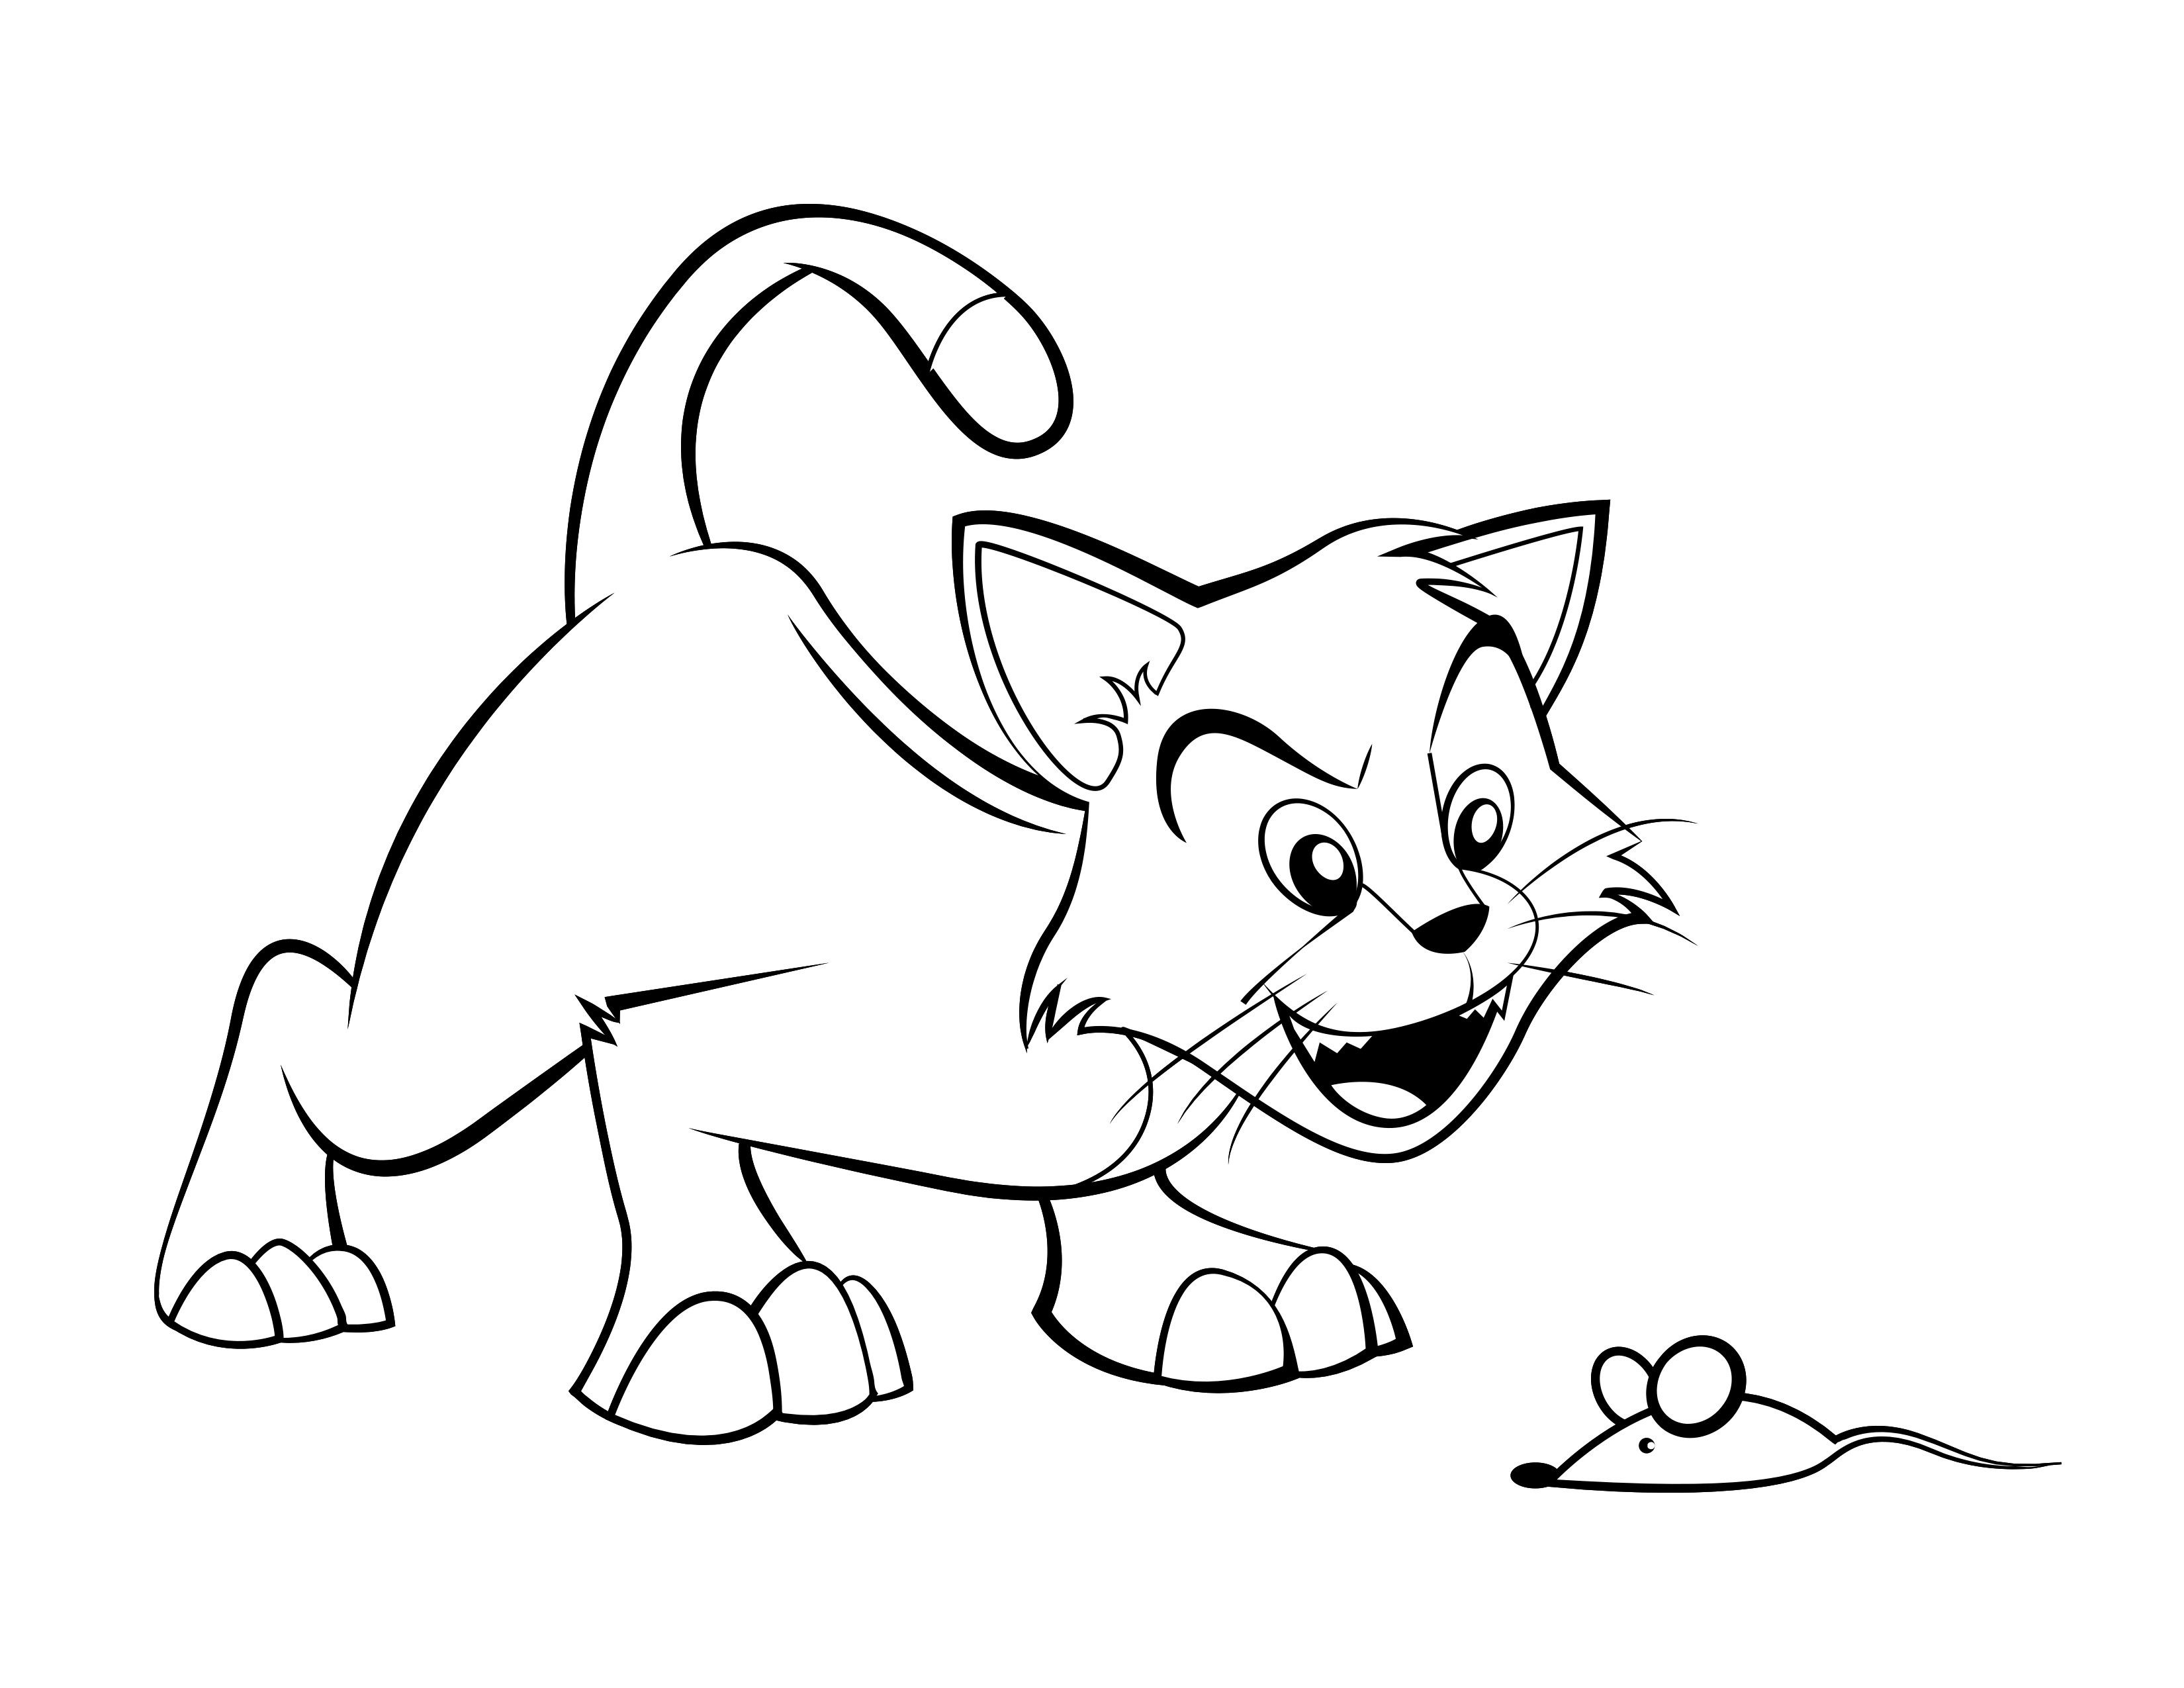 Cartoon Cat Coloring Pages Through The Thousand Photographs On The Web About Cartoon Cat Colorin Animal Coloring Pages Cat Coloring Page Puppy Coloring Pages